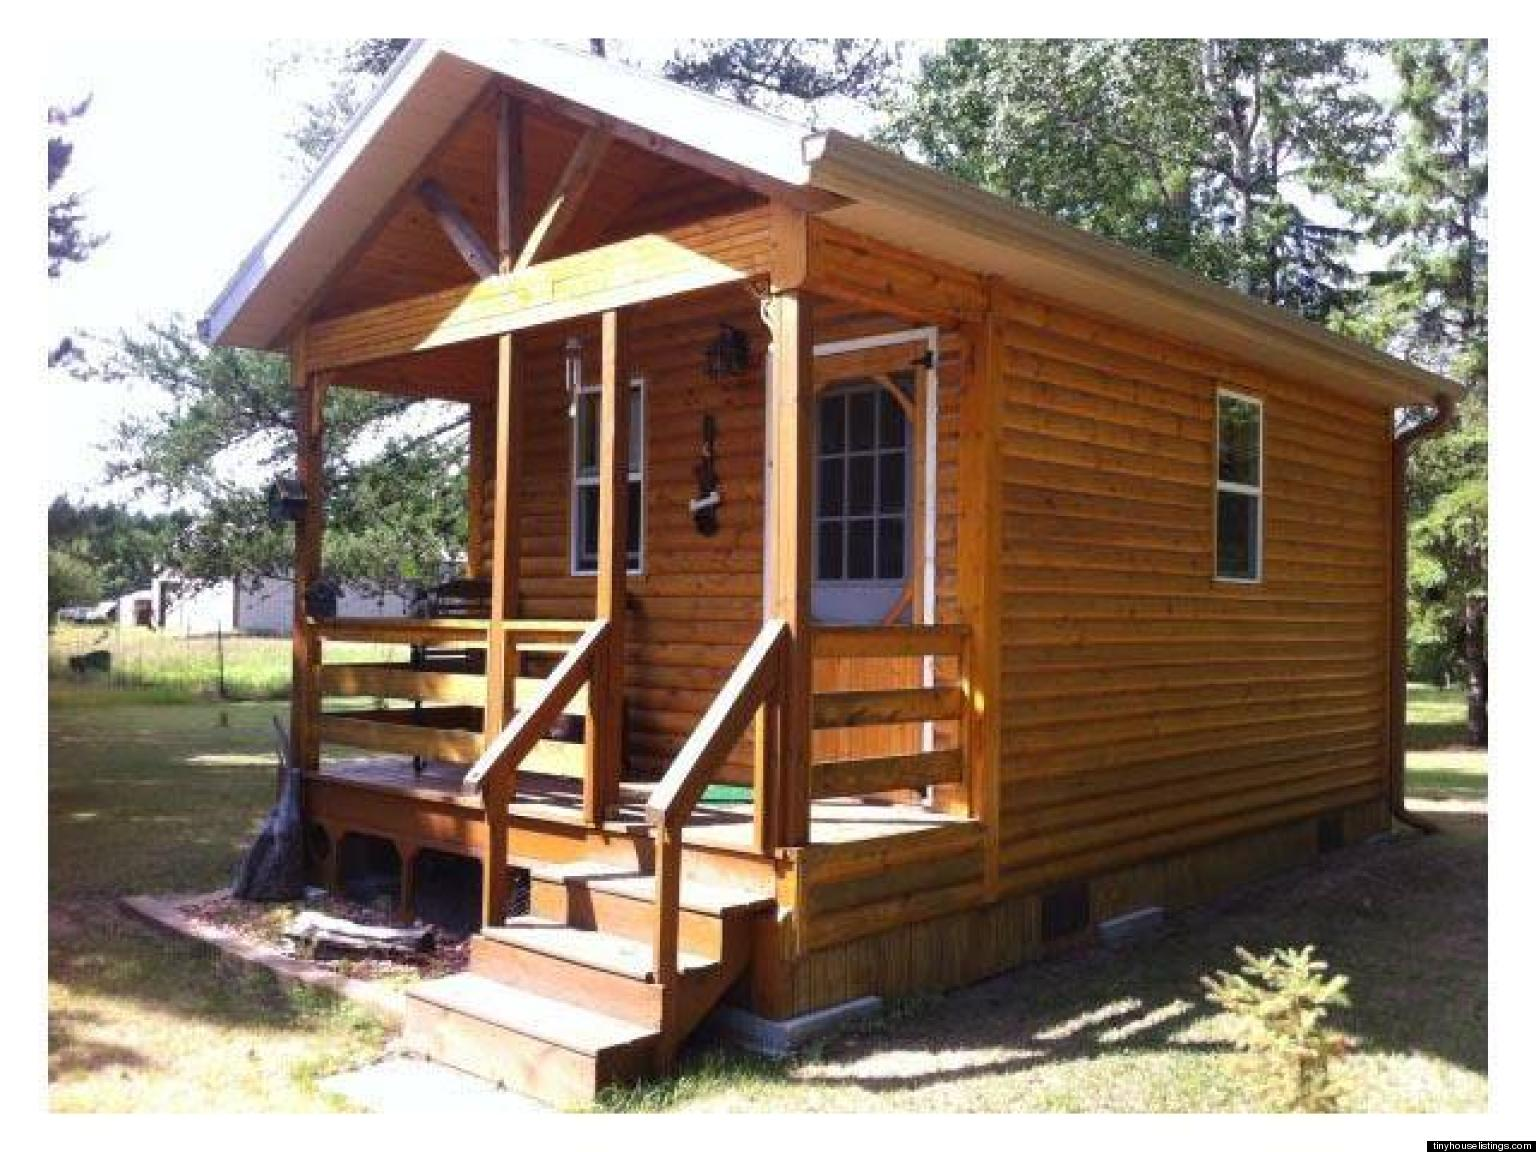 downsizing could you live in a tiny home in retirement